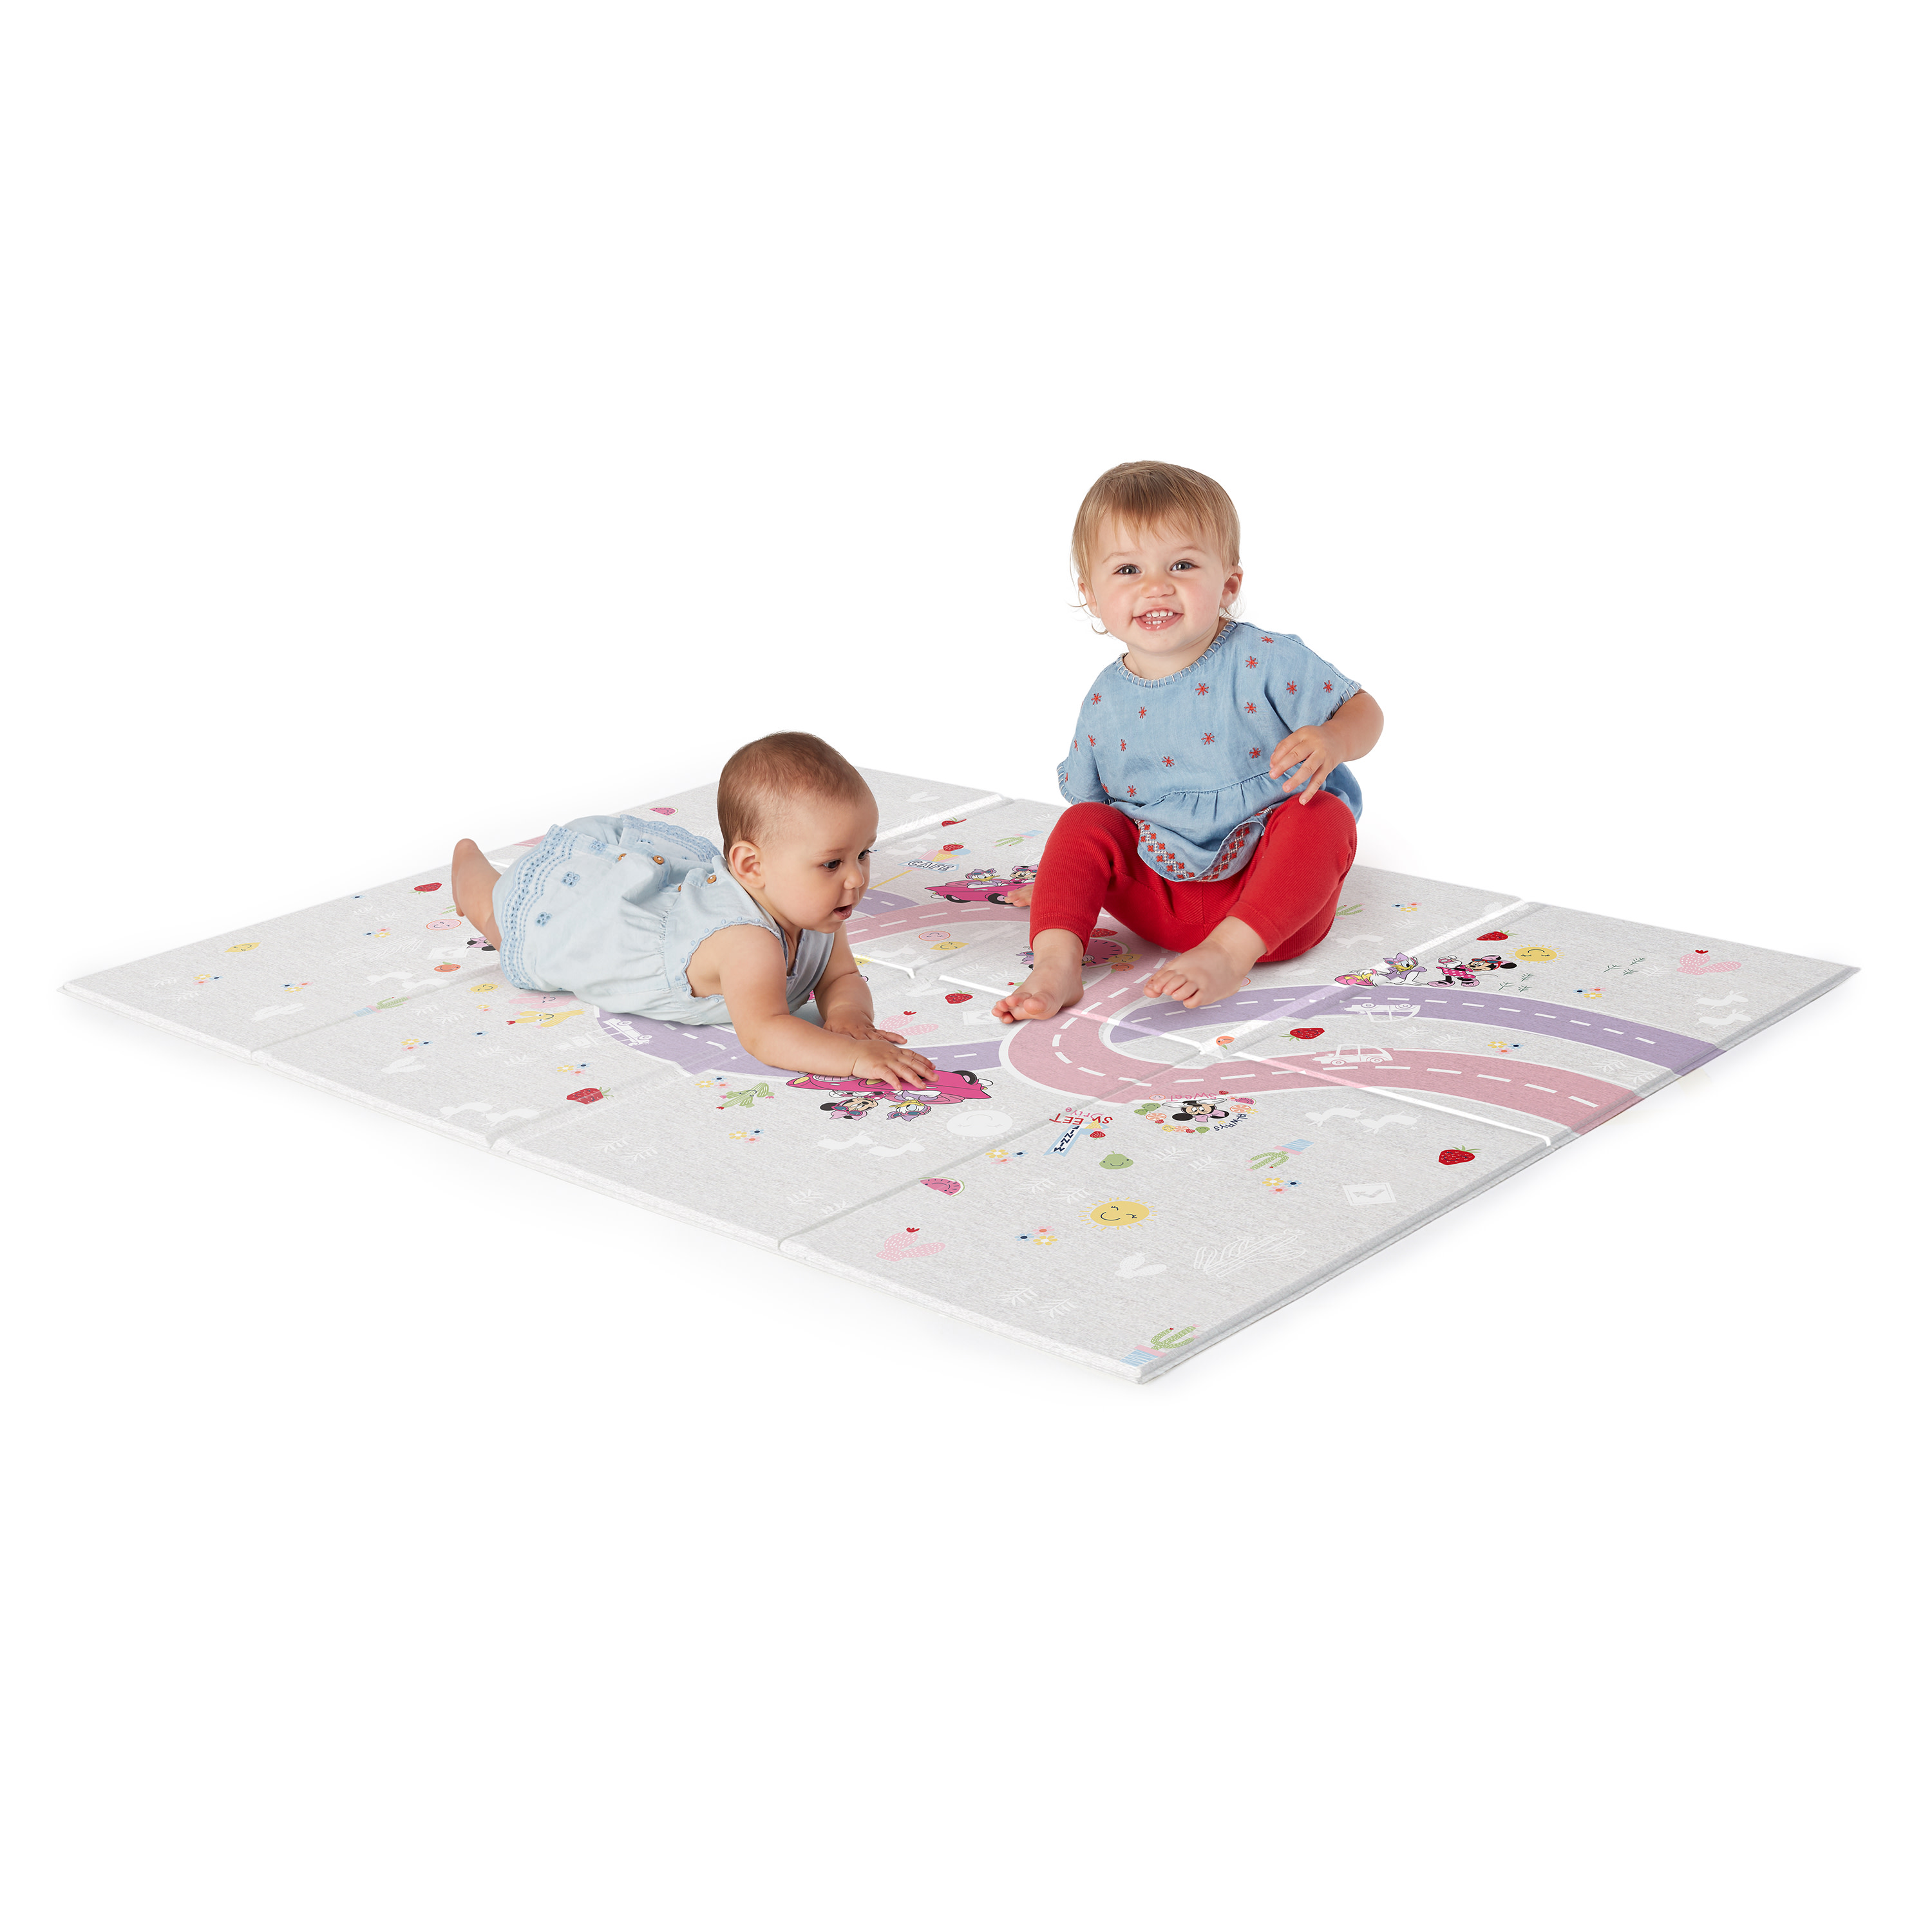 Waterproof Portable Double Sides Crawling Mats Cute Cartoon,Non Toxic for Kids Toddler Rug Baby Folding Mat,Large Tummy Time Folding Baby Crawling Mat Outdoor or Indoor Use 70 x 59 x 0.2 inches